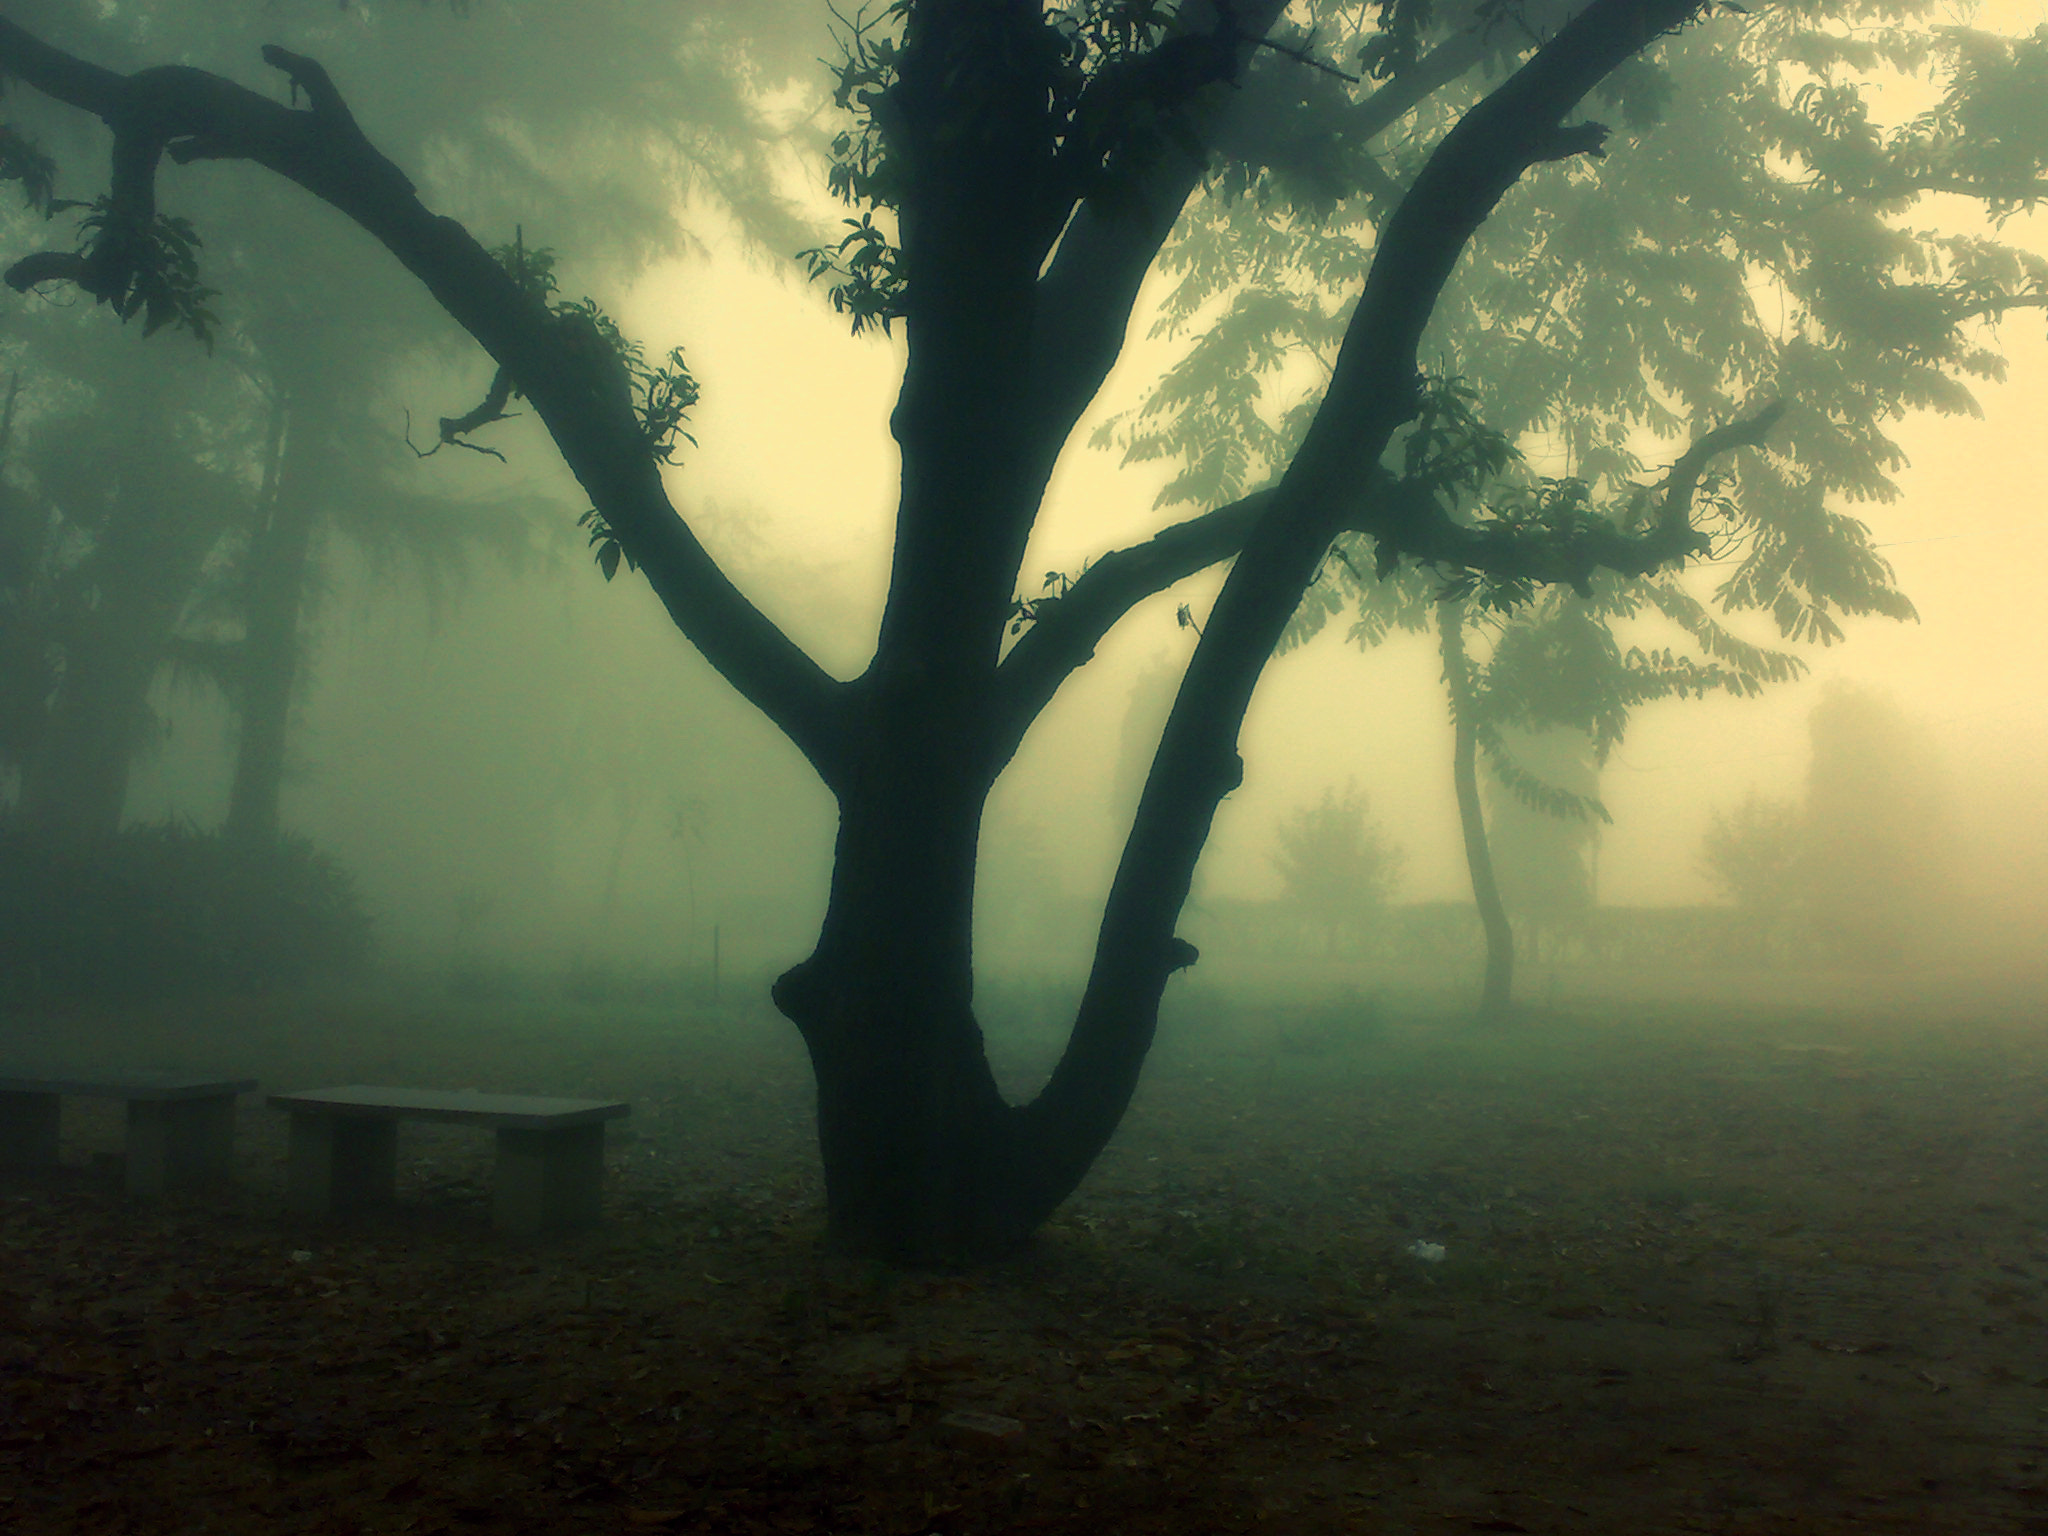 Photograph A Foggy Morning by Rafid Suhail on 500px